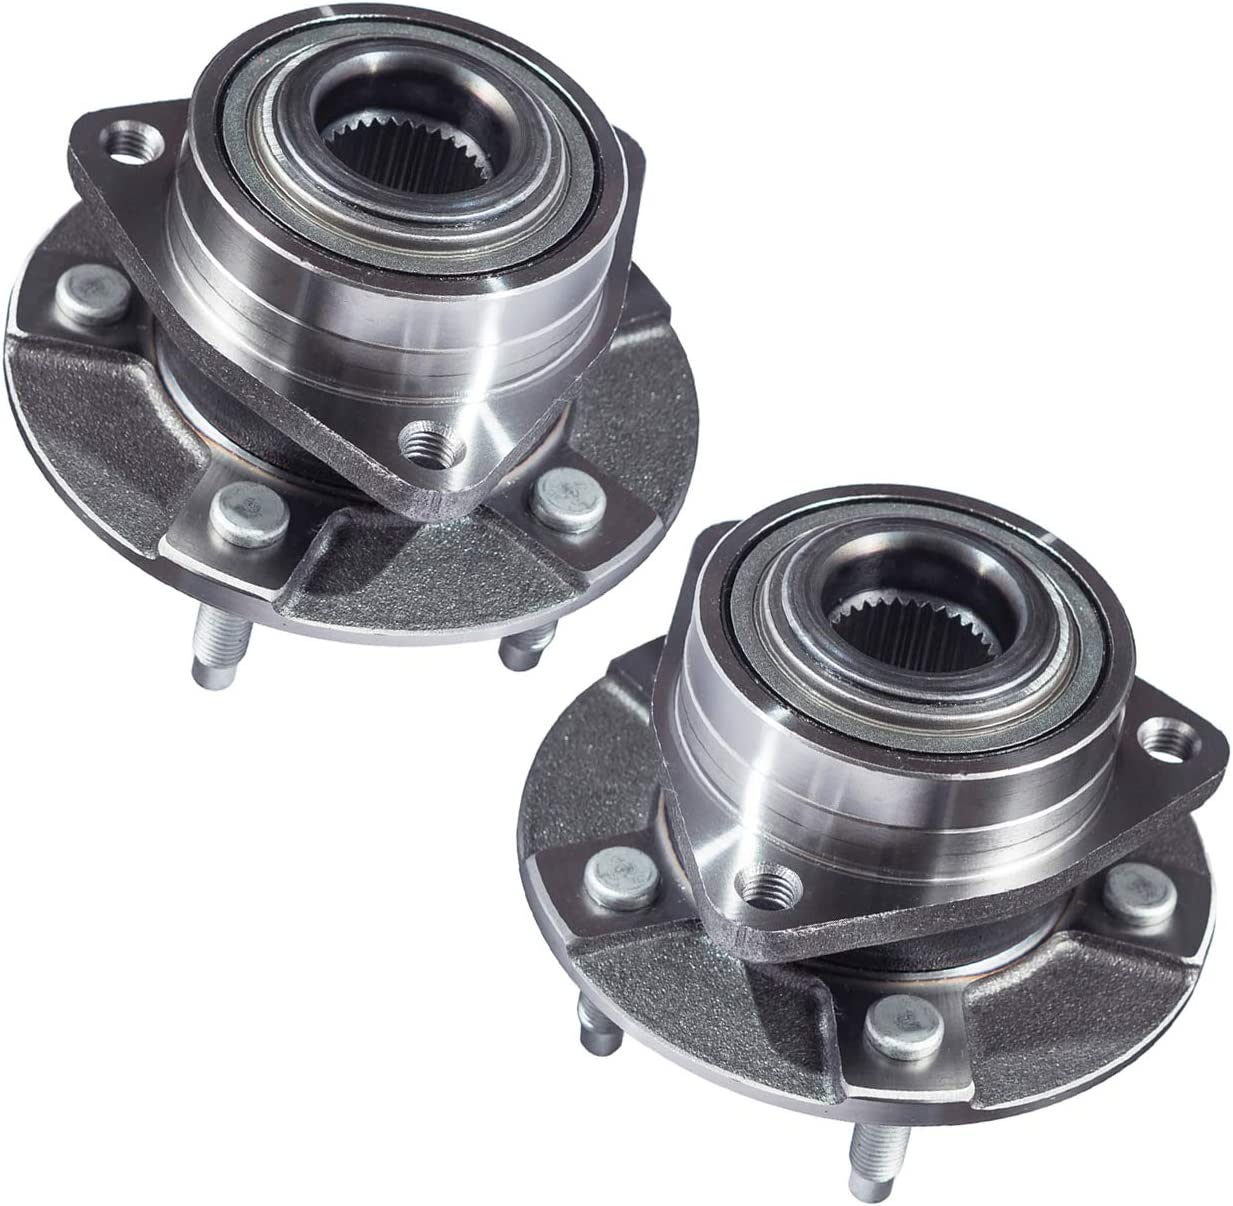 Front Wheel Bearing and Hub Assembly TUCAREST 5 Stud Hub 2Pcs 513190 Compatible With 2005 Chevrolet Equinox 06 Pontiac Torrent 02-07 Saturn Vue Pair Fits Vehicles With Non-ABS